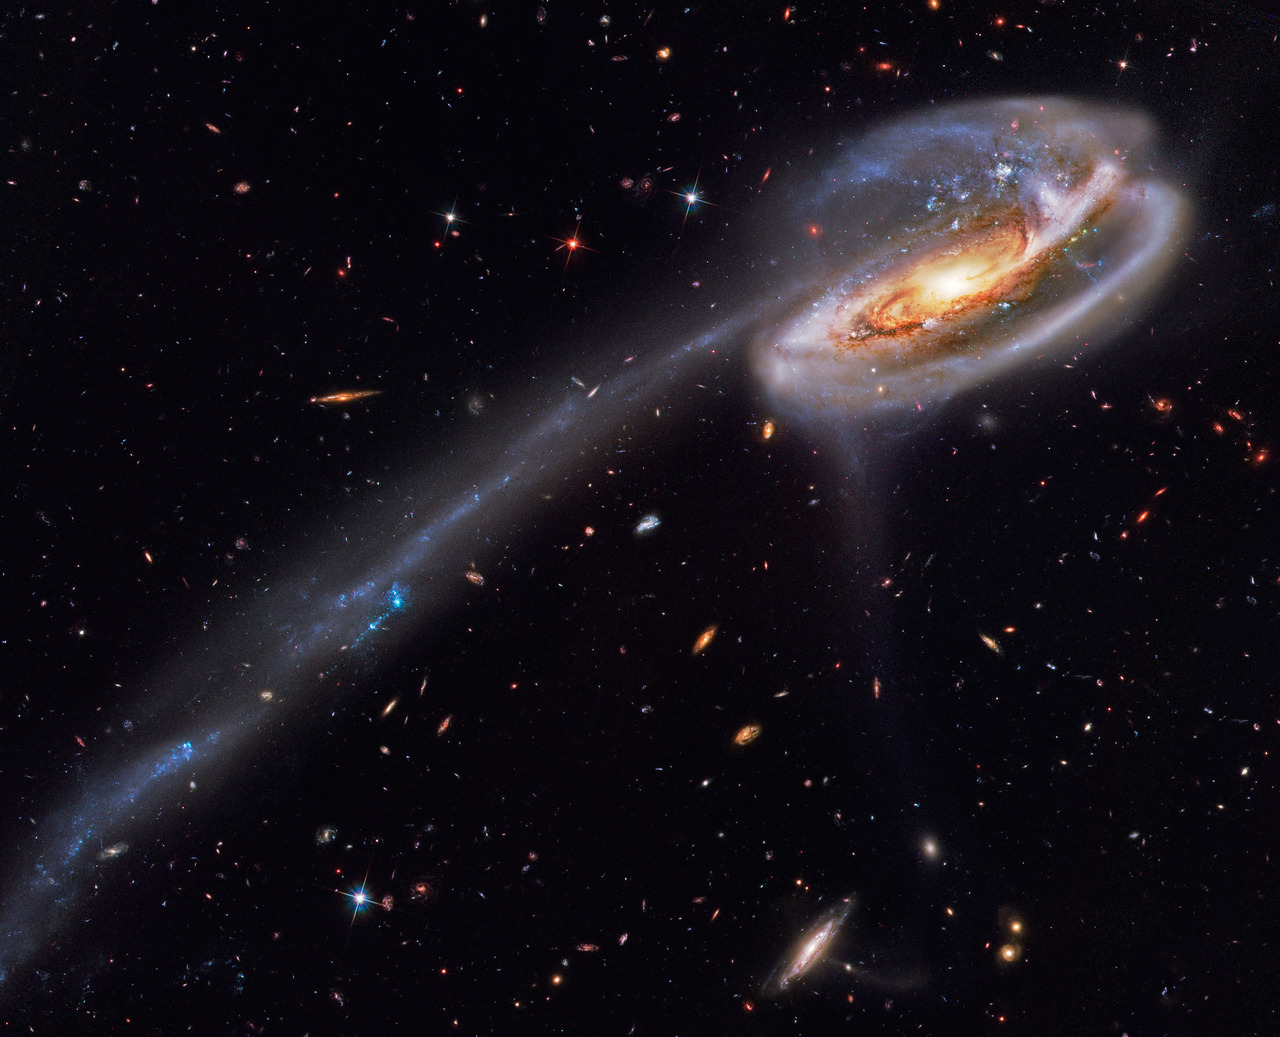 Arp 188 and the Tadpole s Tail Image Credit: Hubble Legacy Archive, ESA, NASA; Processing - Bill Snyder (Heavens Mirror Observatory)